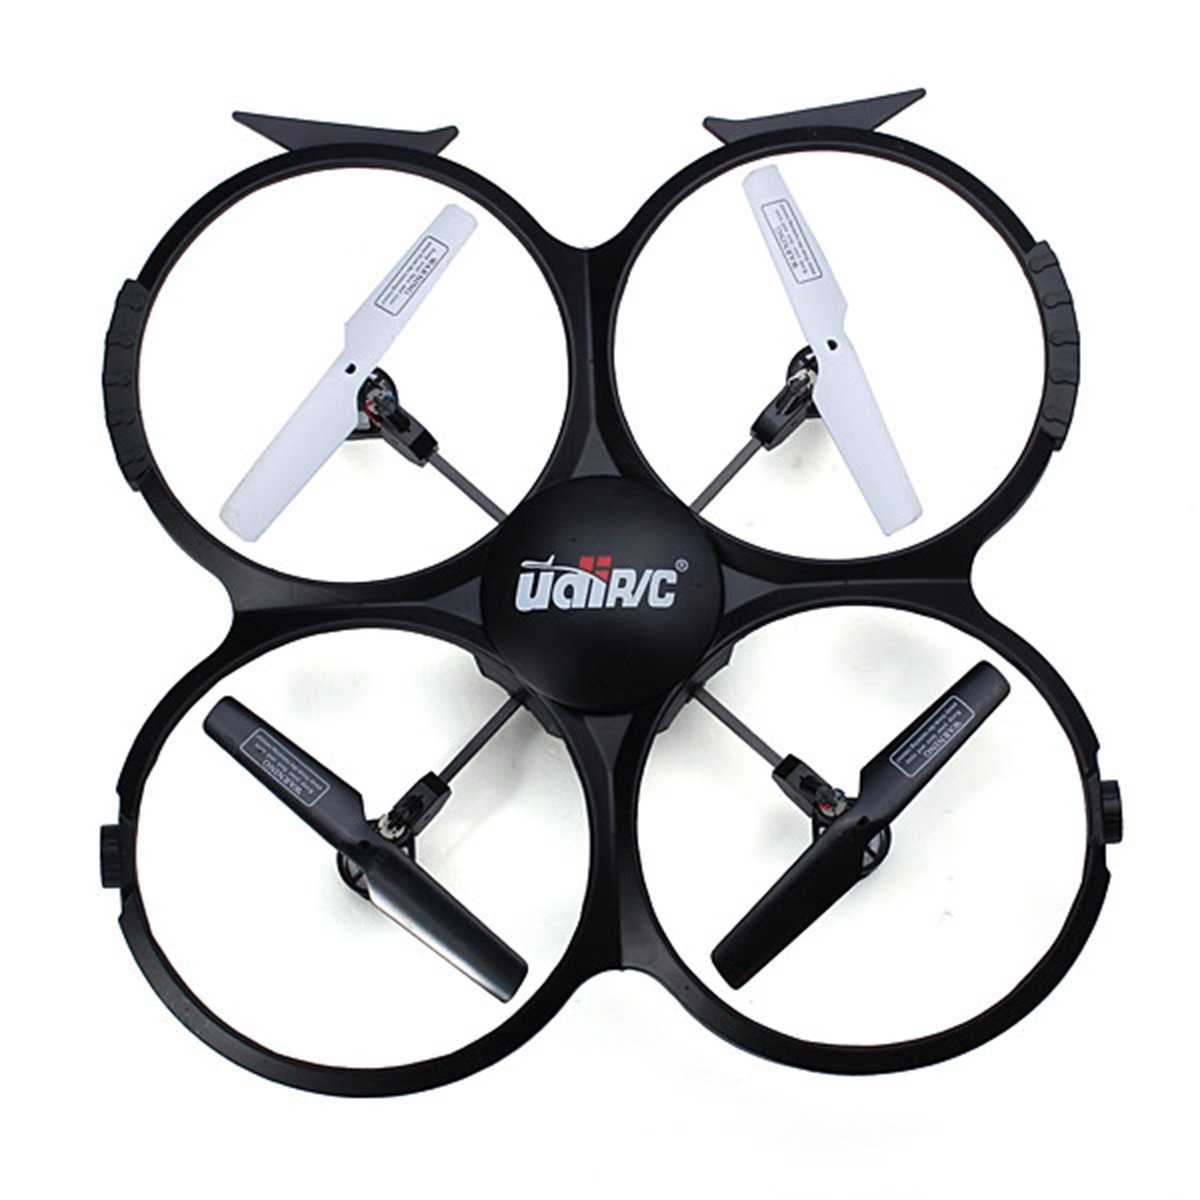 LiDi RC U818A HD 6-Achsen Gyro RC Quadcopter RTF UFO mit 720P HD Kamera Kopfloser Modus und One-Key Return Quadcopter